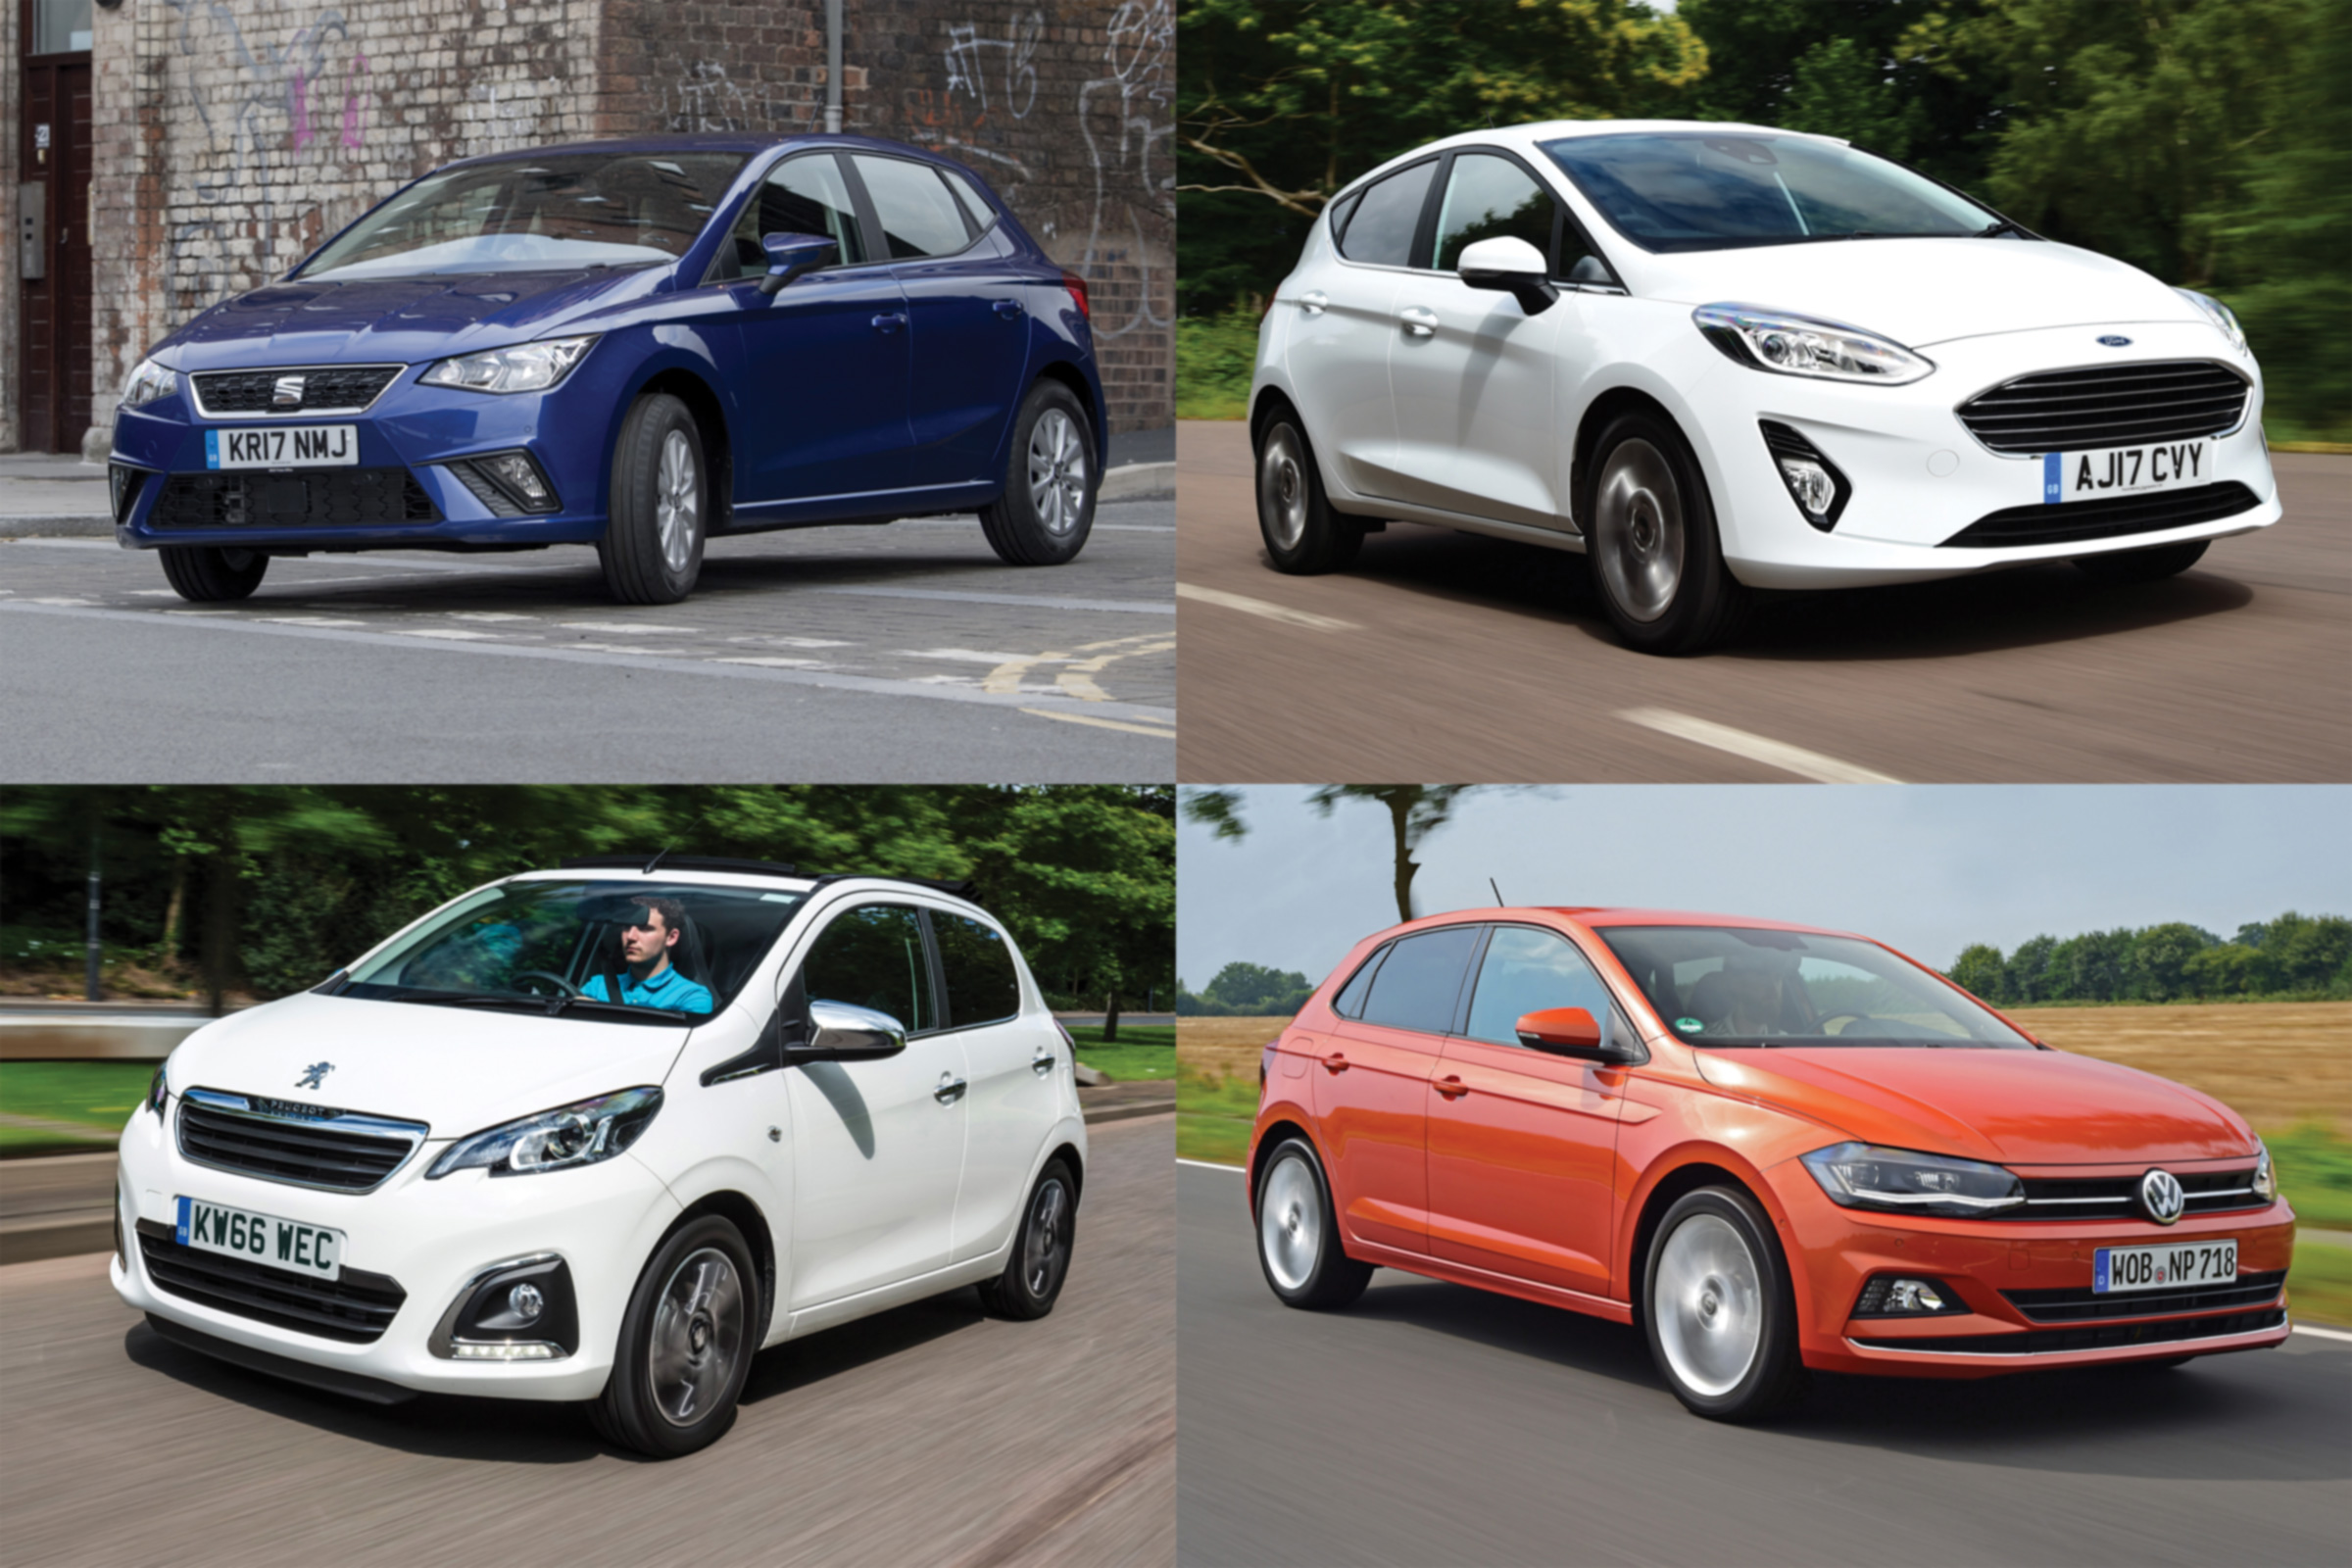 Looking for Cars for Sale Lovely Best First Cars for New Drivers 2019 How to Choose